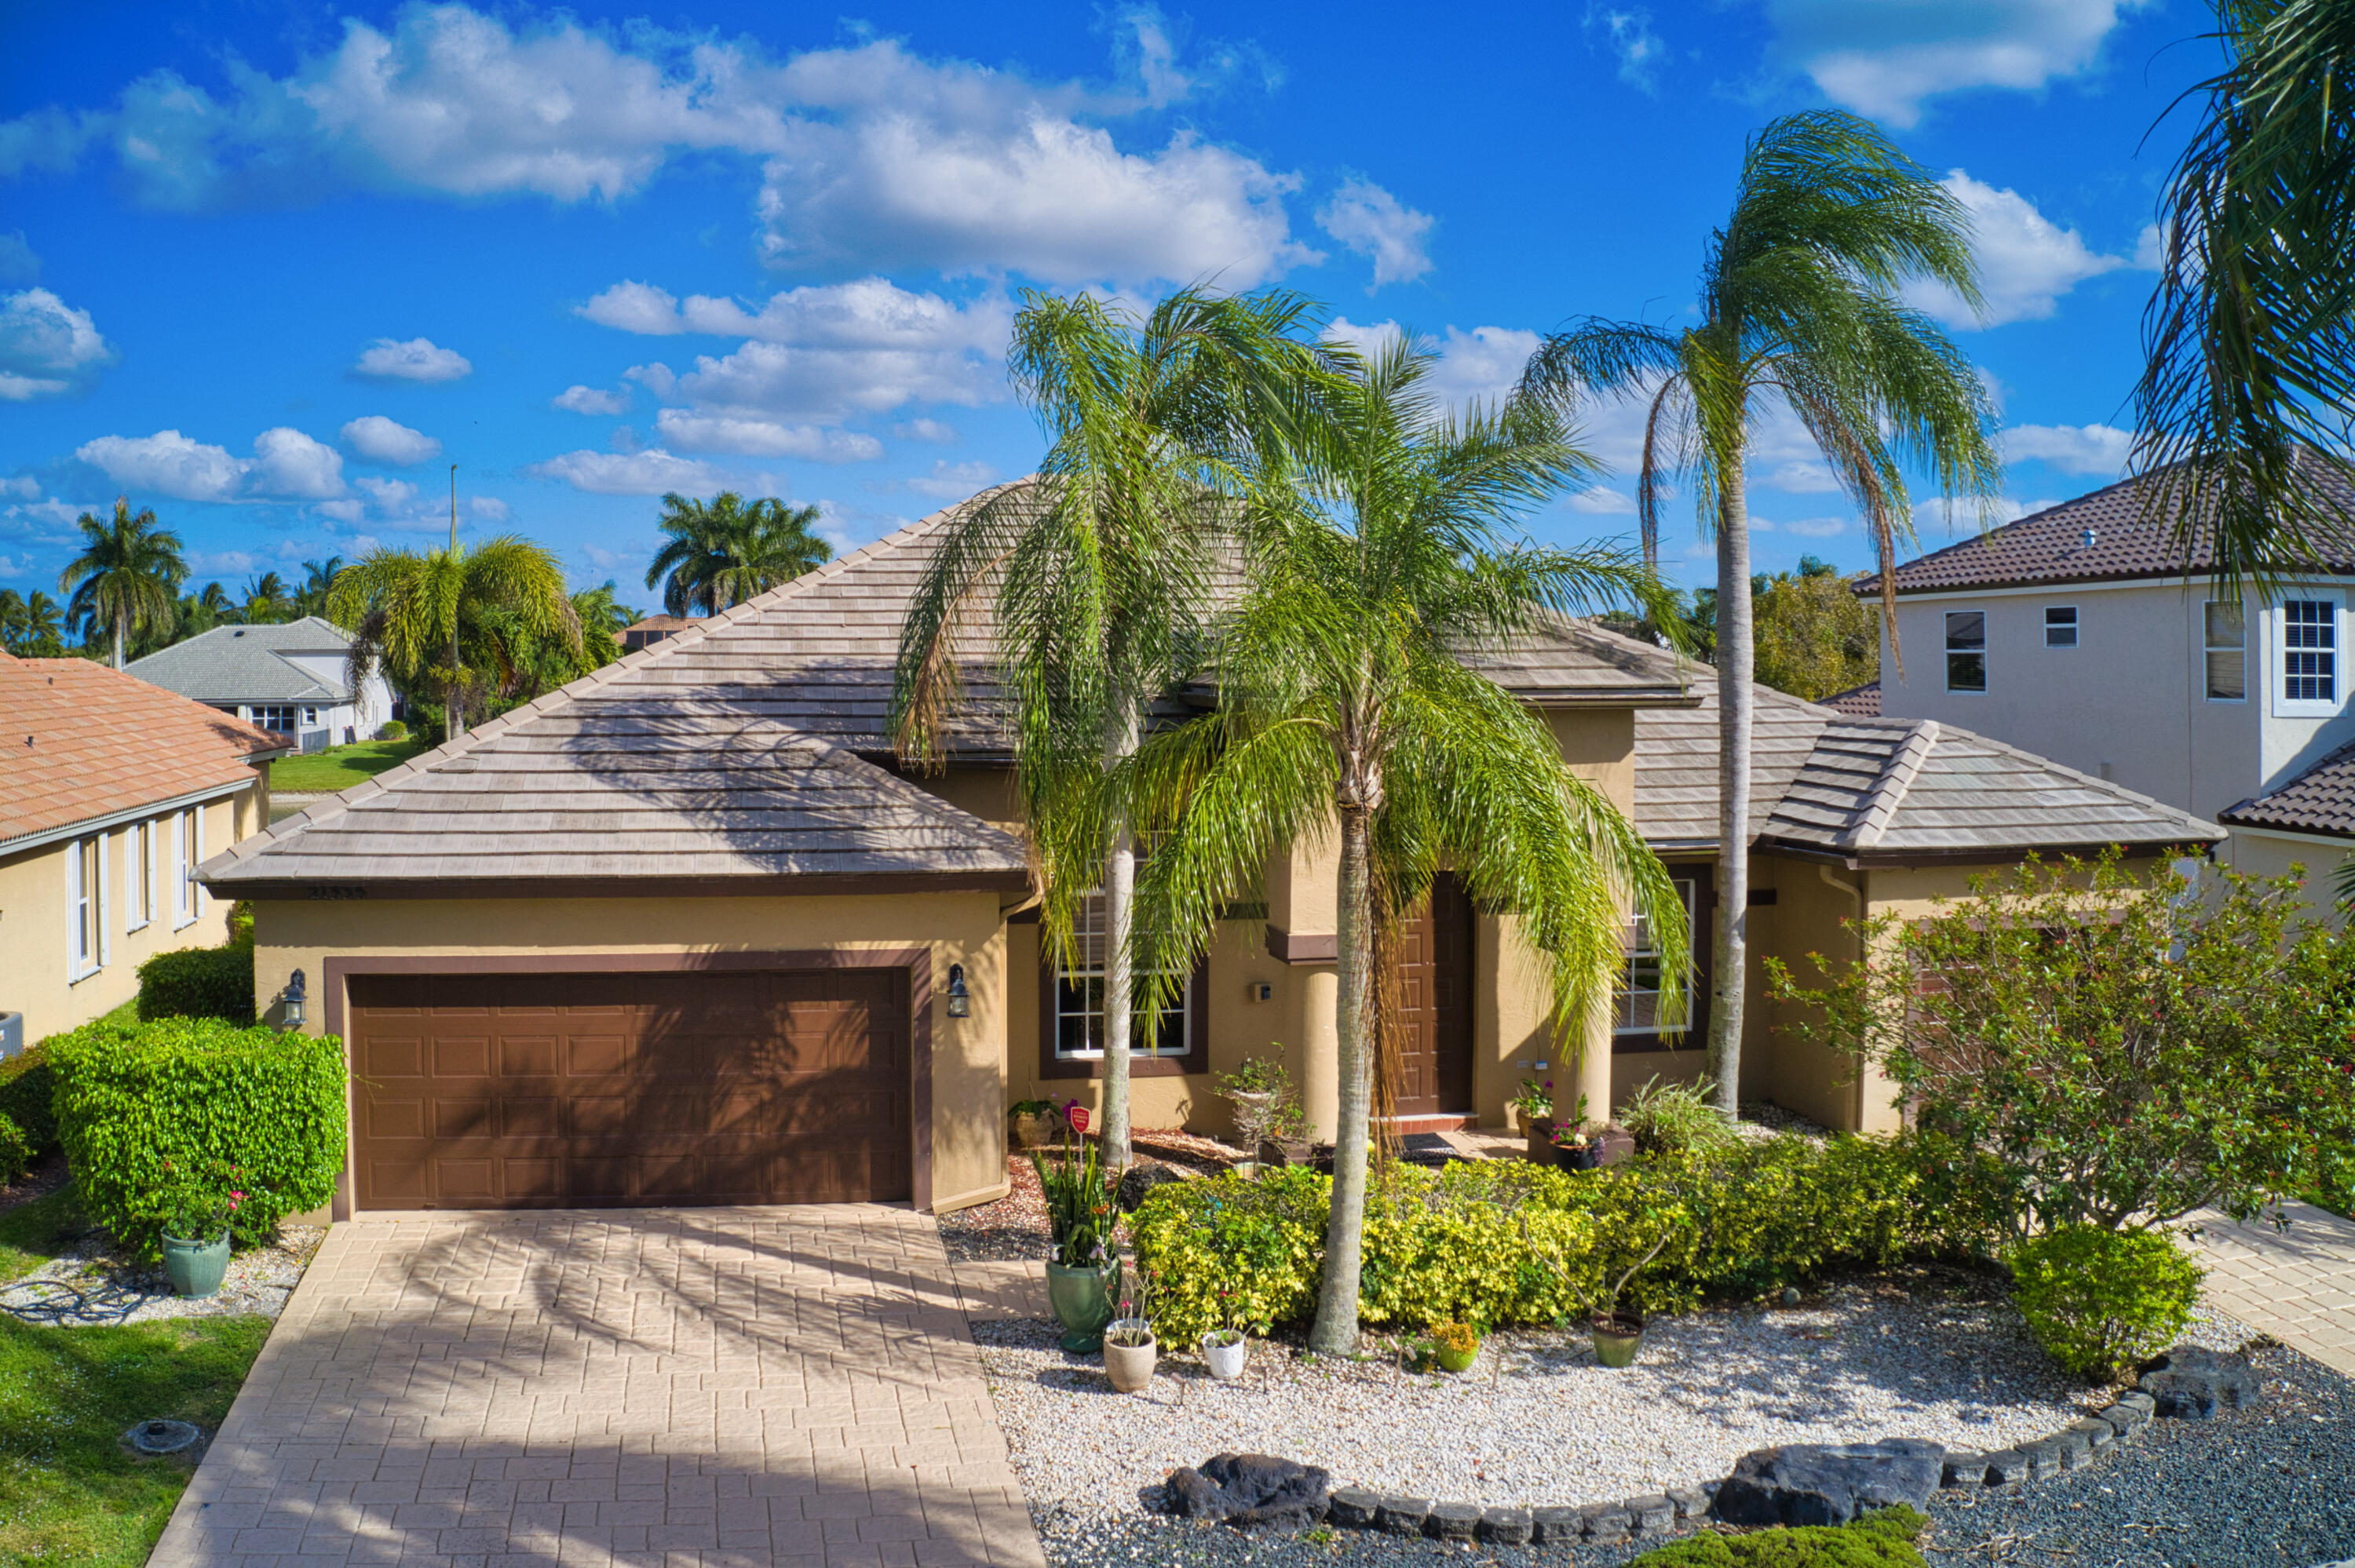 Home for sale in Boca Falls Boca Raton Florida